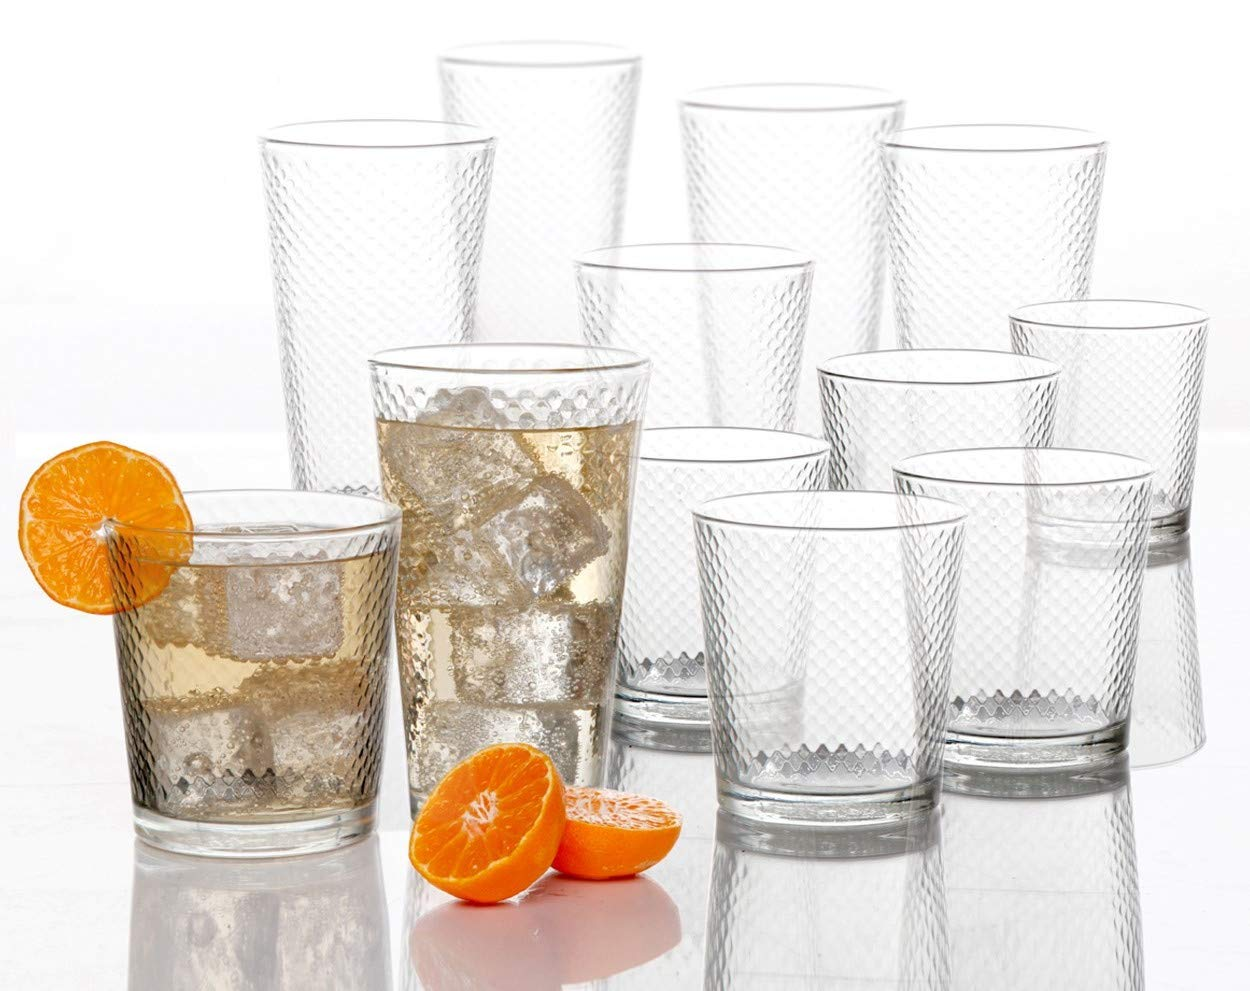 Circleware 40149 Huge 16-Piece Set of Highball Tumbler Drinking Glasses and Whiskey Cups, Home & Kitchen Party Glassware for Water, Beer, Juice, Ice Tea, Bar Beverages, 8-15.75 oz & 8-12.5 oz, Paragon